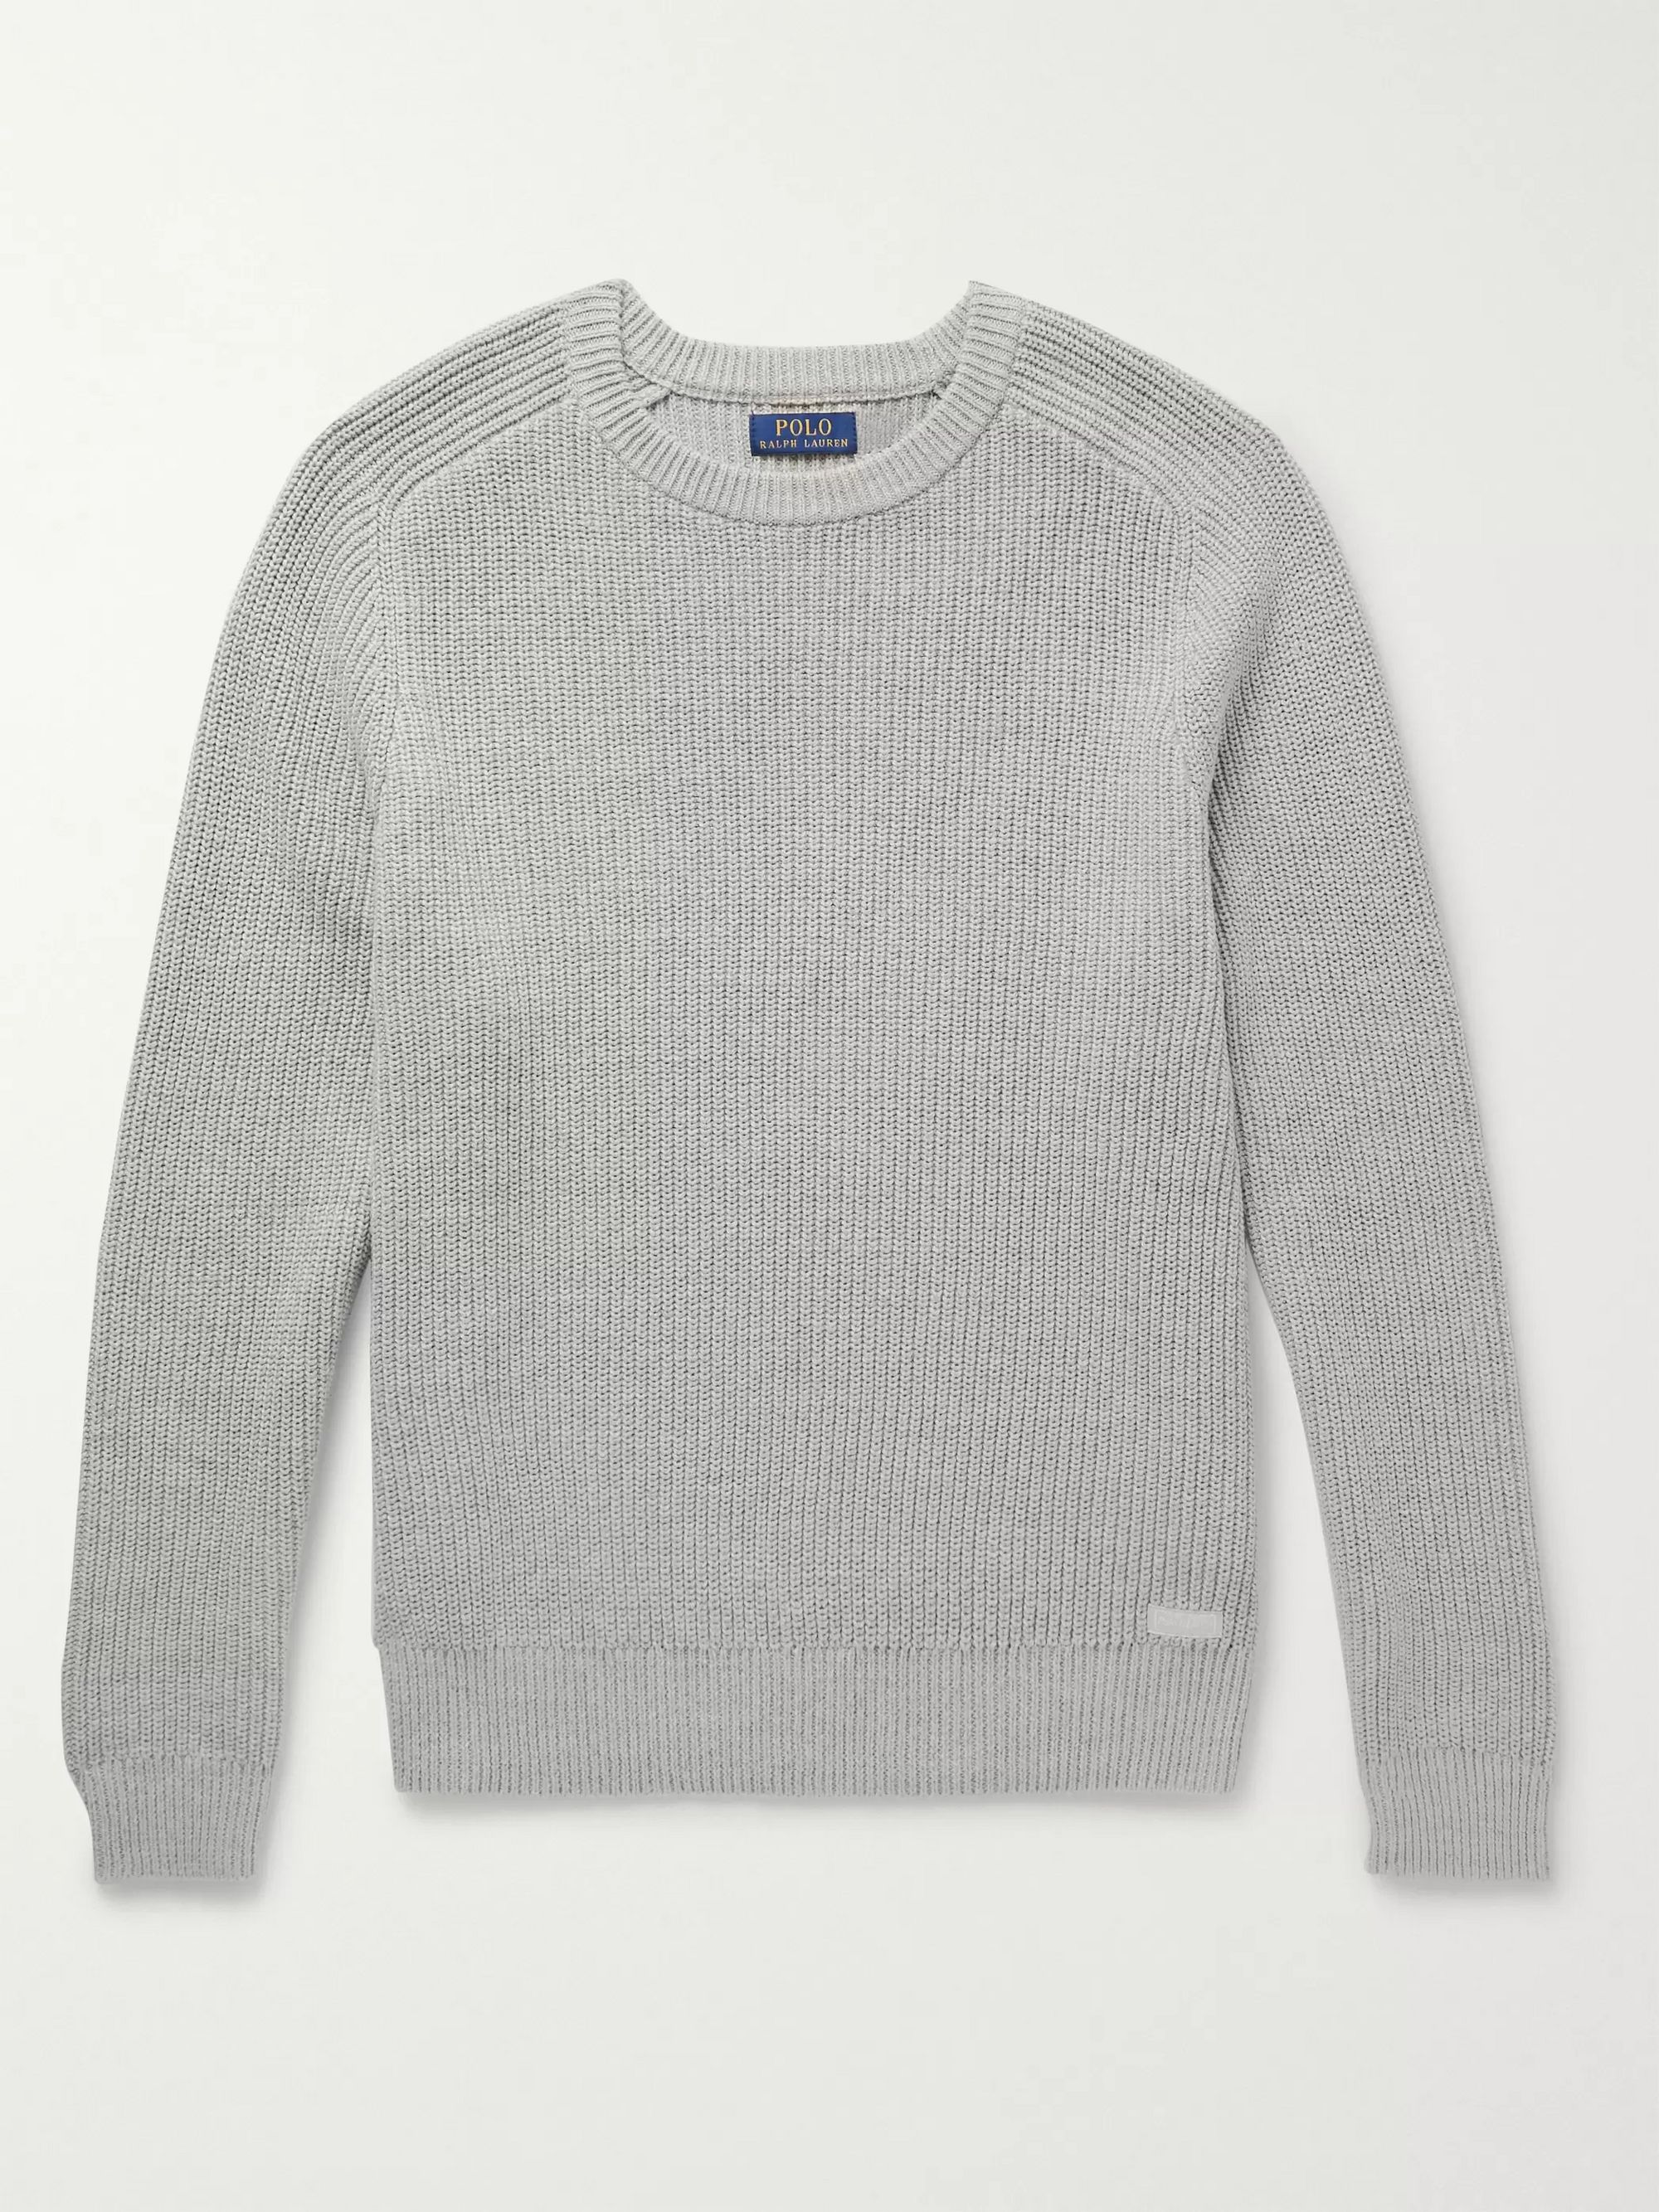 Polo Ralph Lauren Ribbed Cotton Sweater